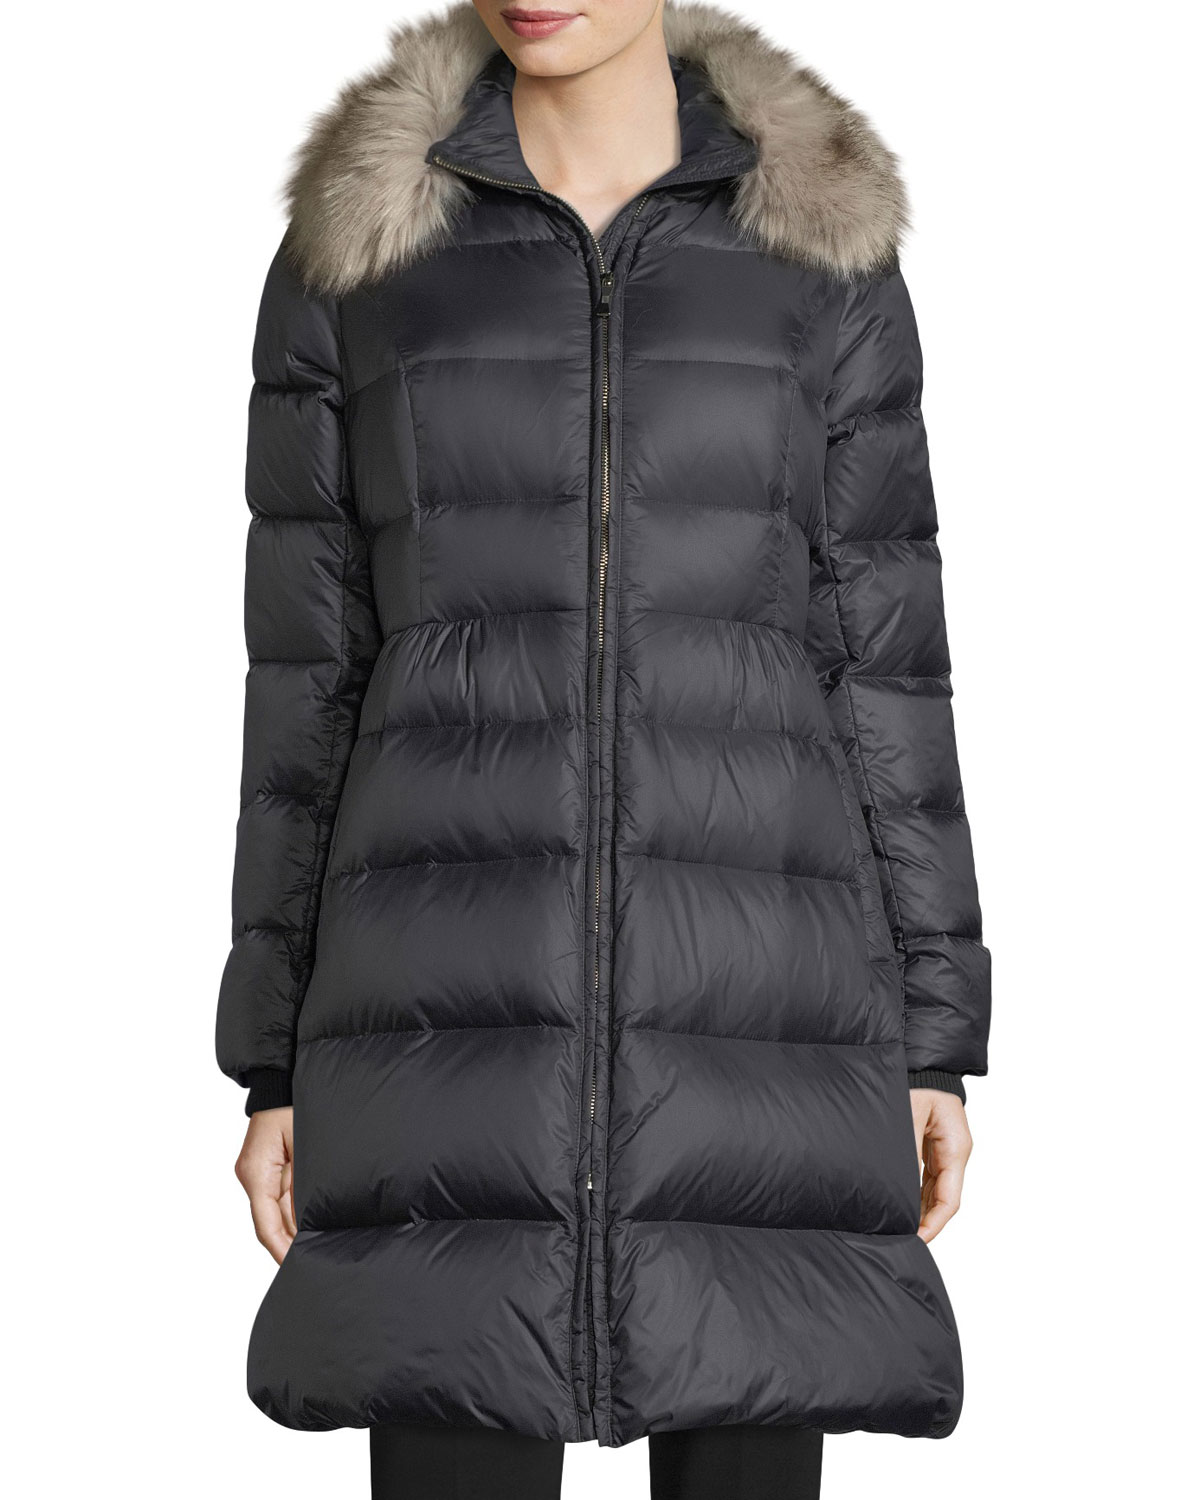 cbe23db182ce kate spade new yorkquilted puffer down skirted coat w  faux-fur collar